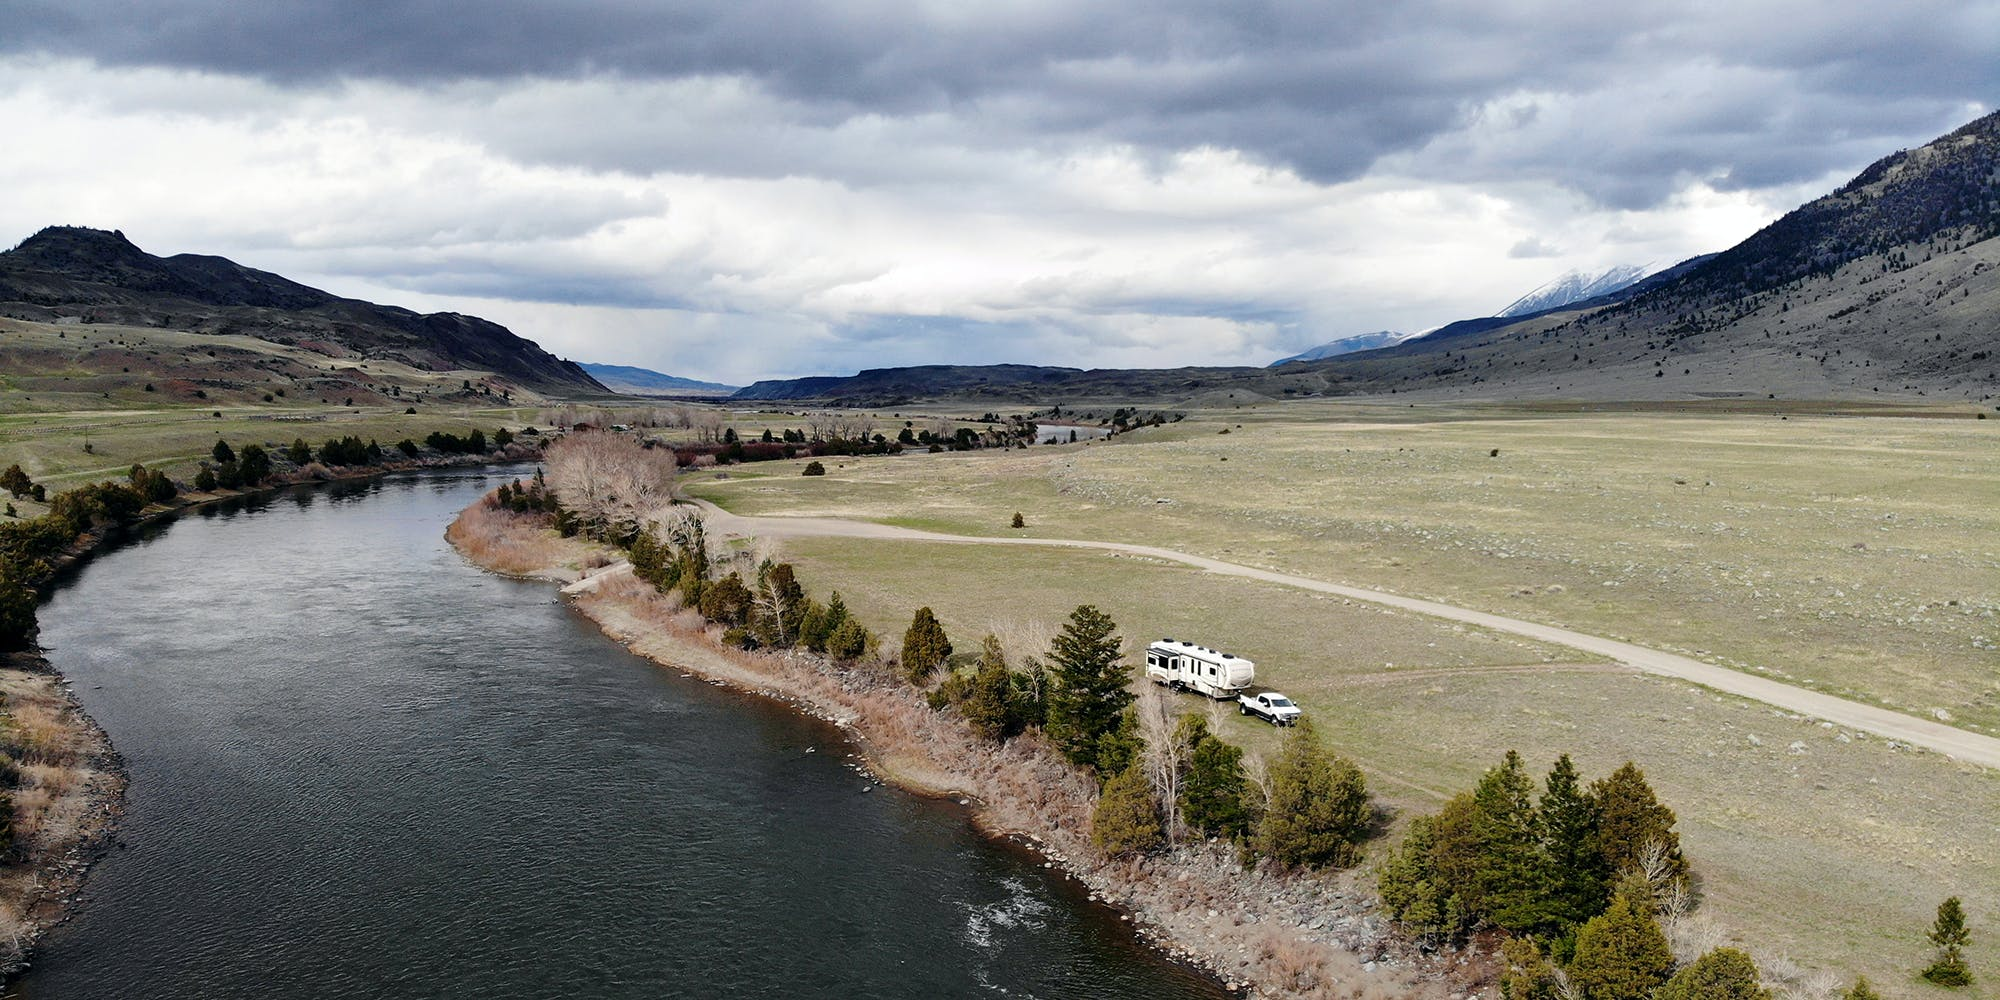 A fifth wheel parked alongside a river near Yellowstone National Park